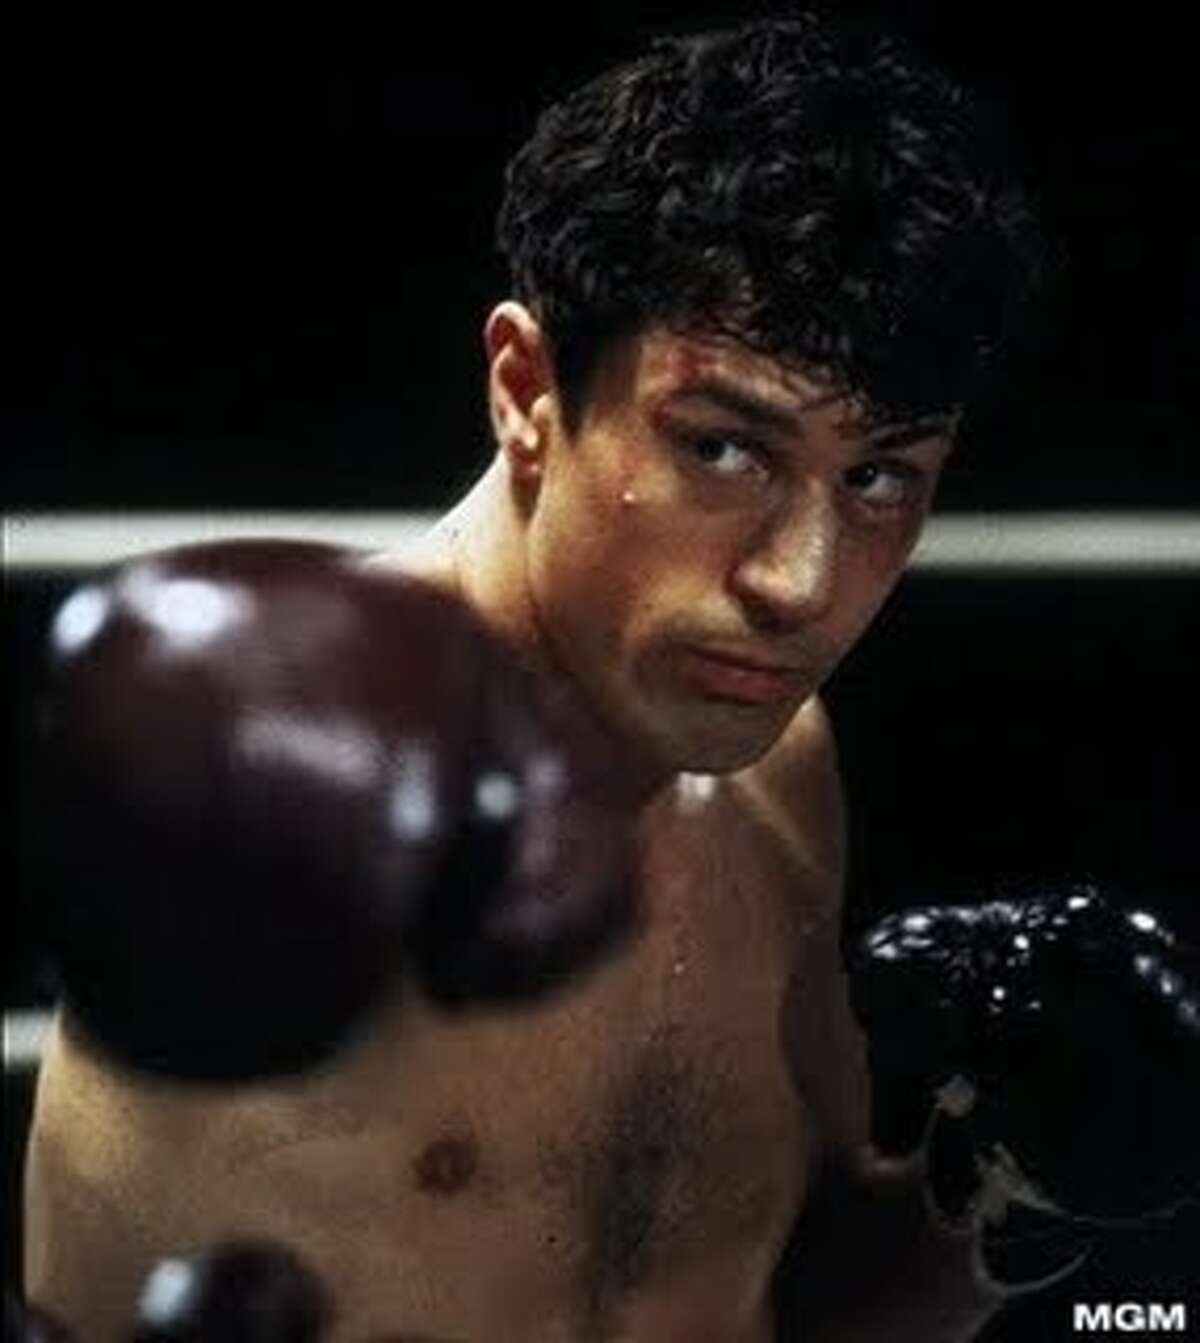 'Raging Bull' - Robert De Niro stars as Jake La Motta in this career-defining role.